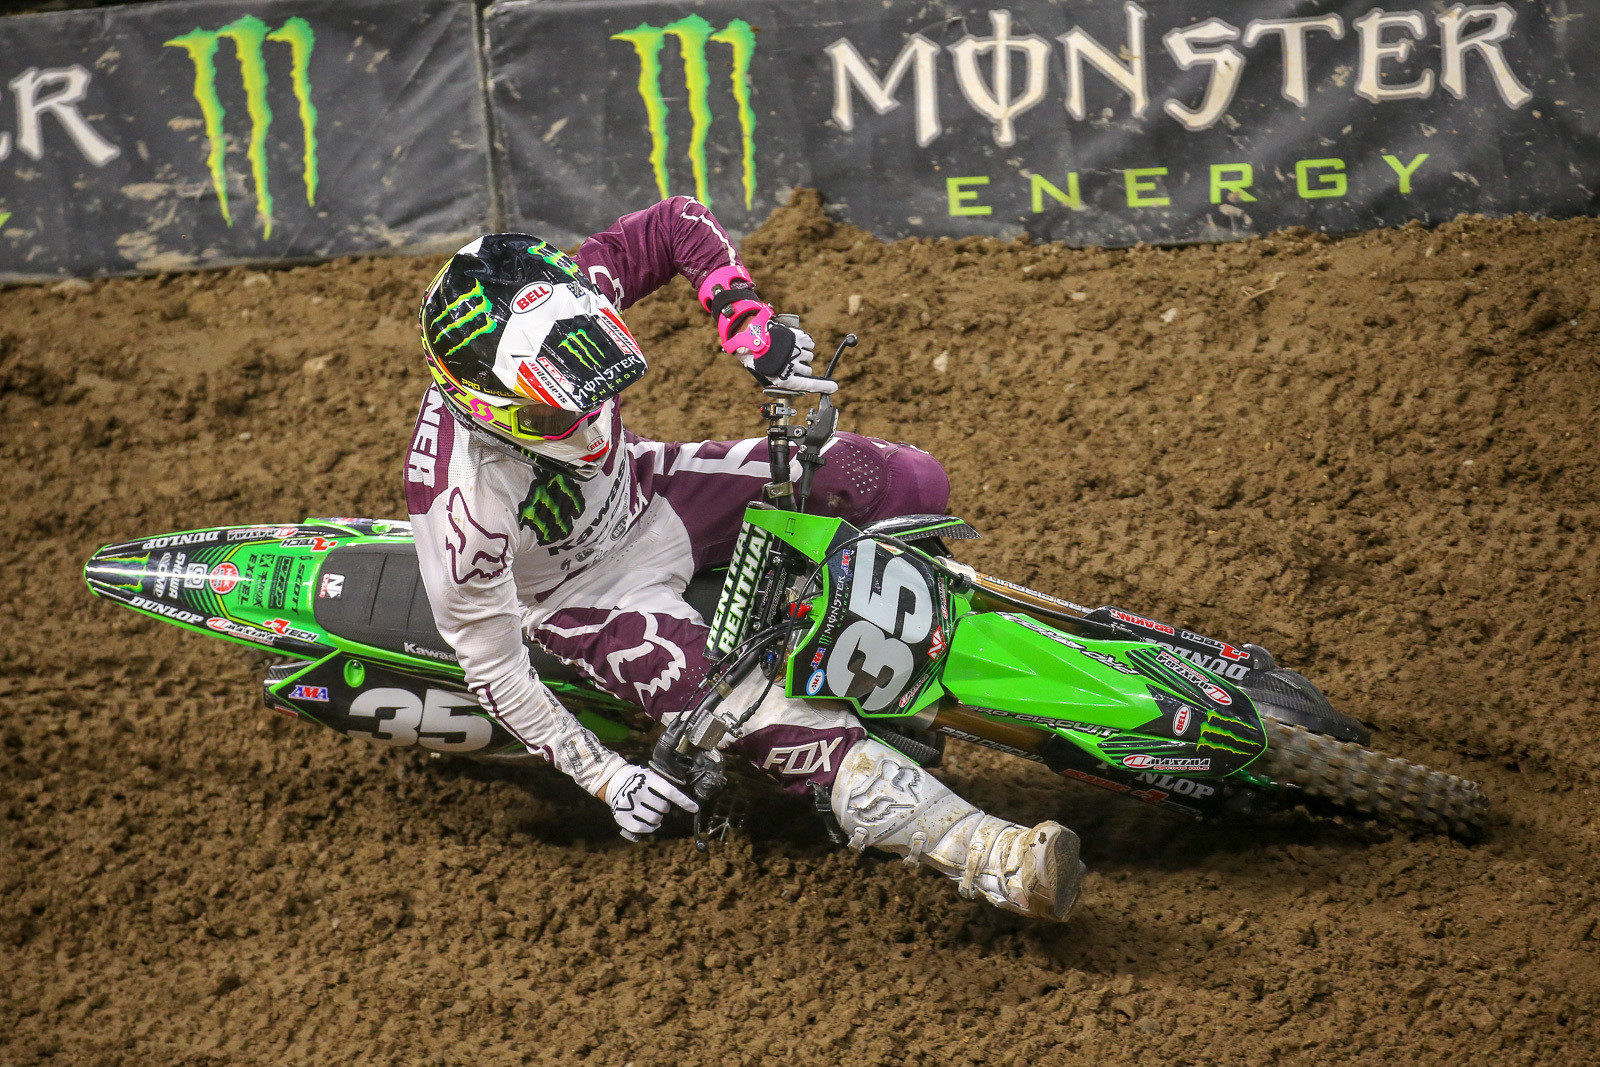 Injury Report: Austin Forkner - Broken Collarbone